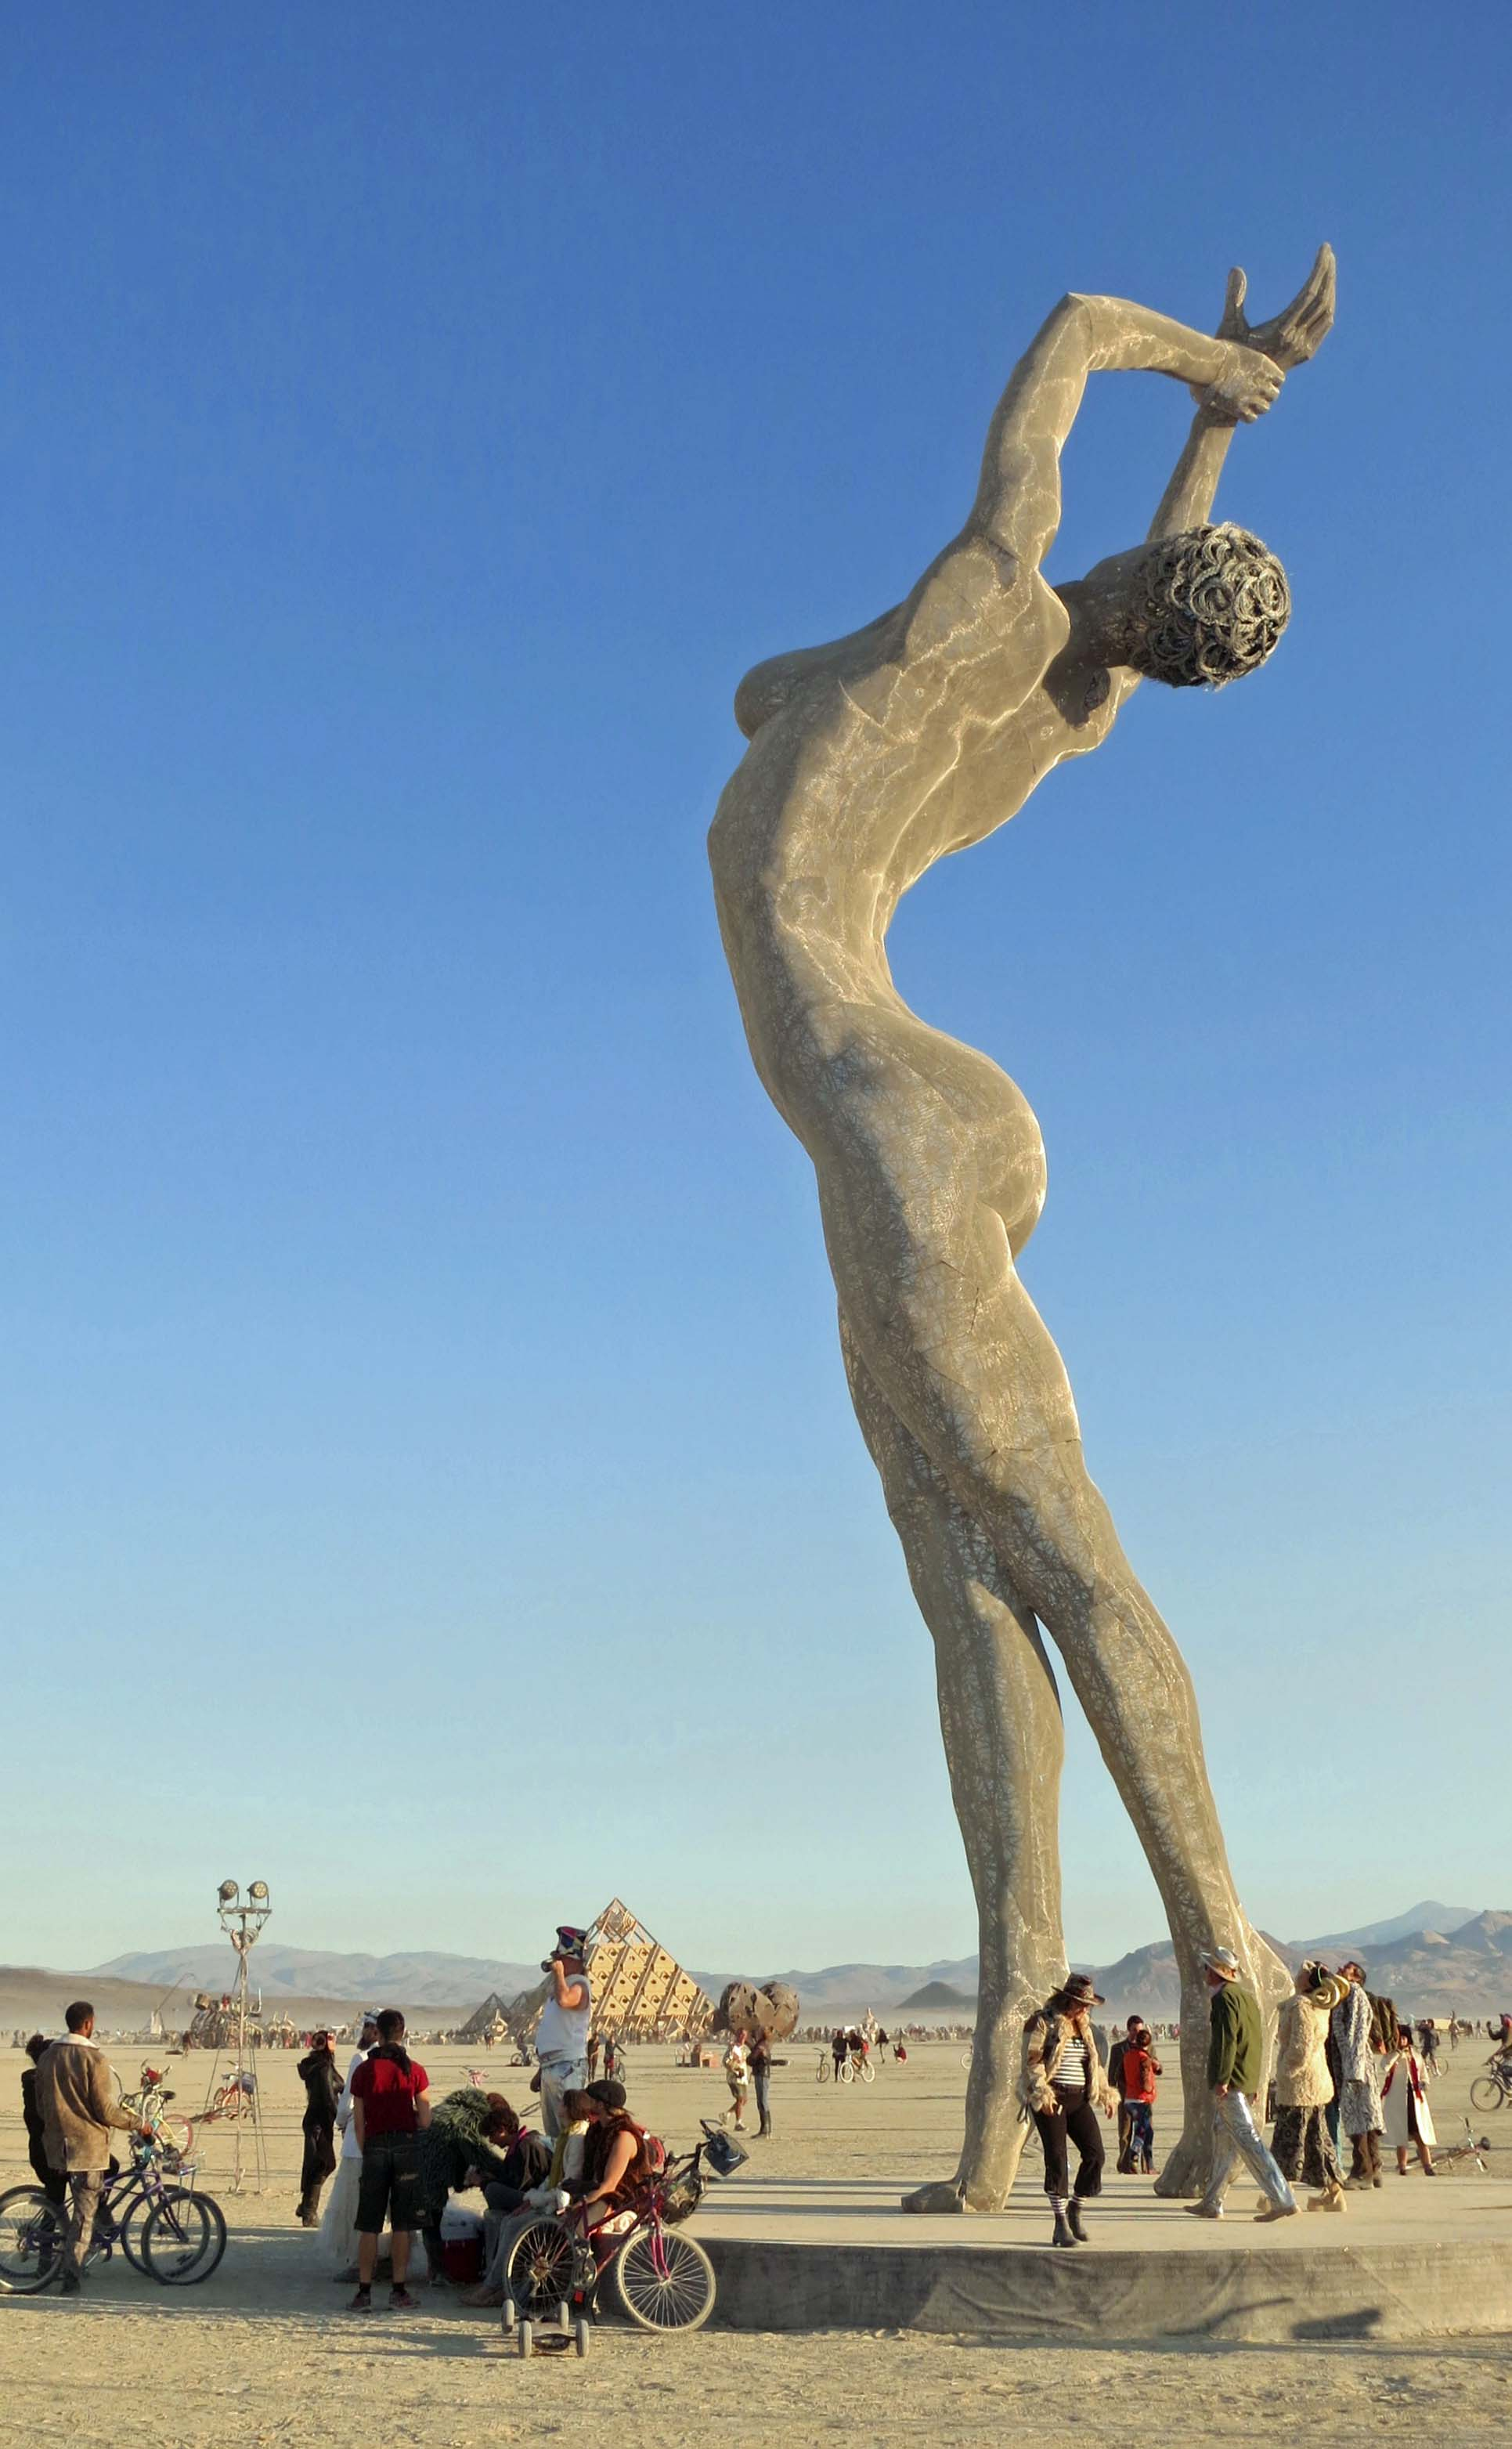 The sculpture Truth and Beauty at Burning Man 2013.